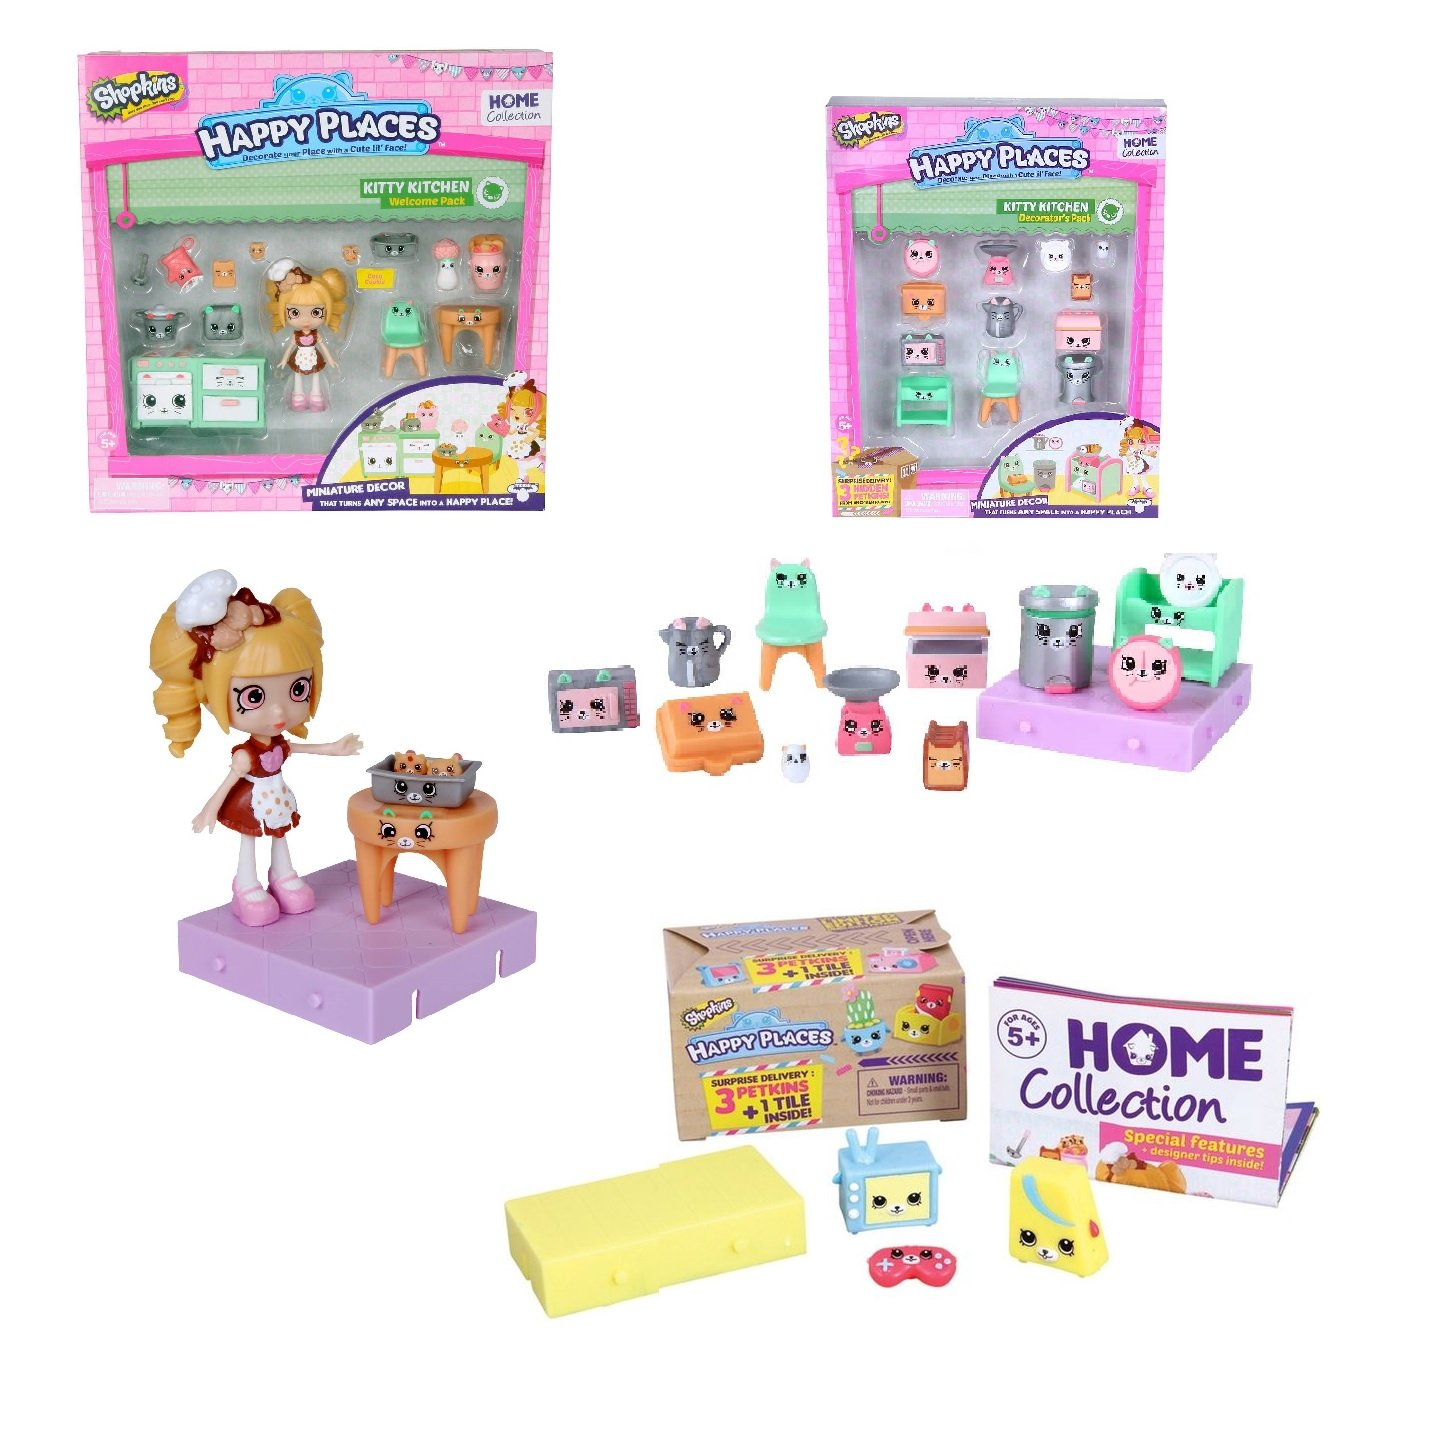 Amazon.com: Shopkins Shoppies Pam Cake Petkins Happy Places Kitty ...